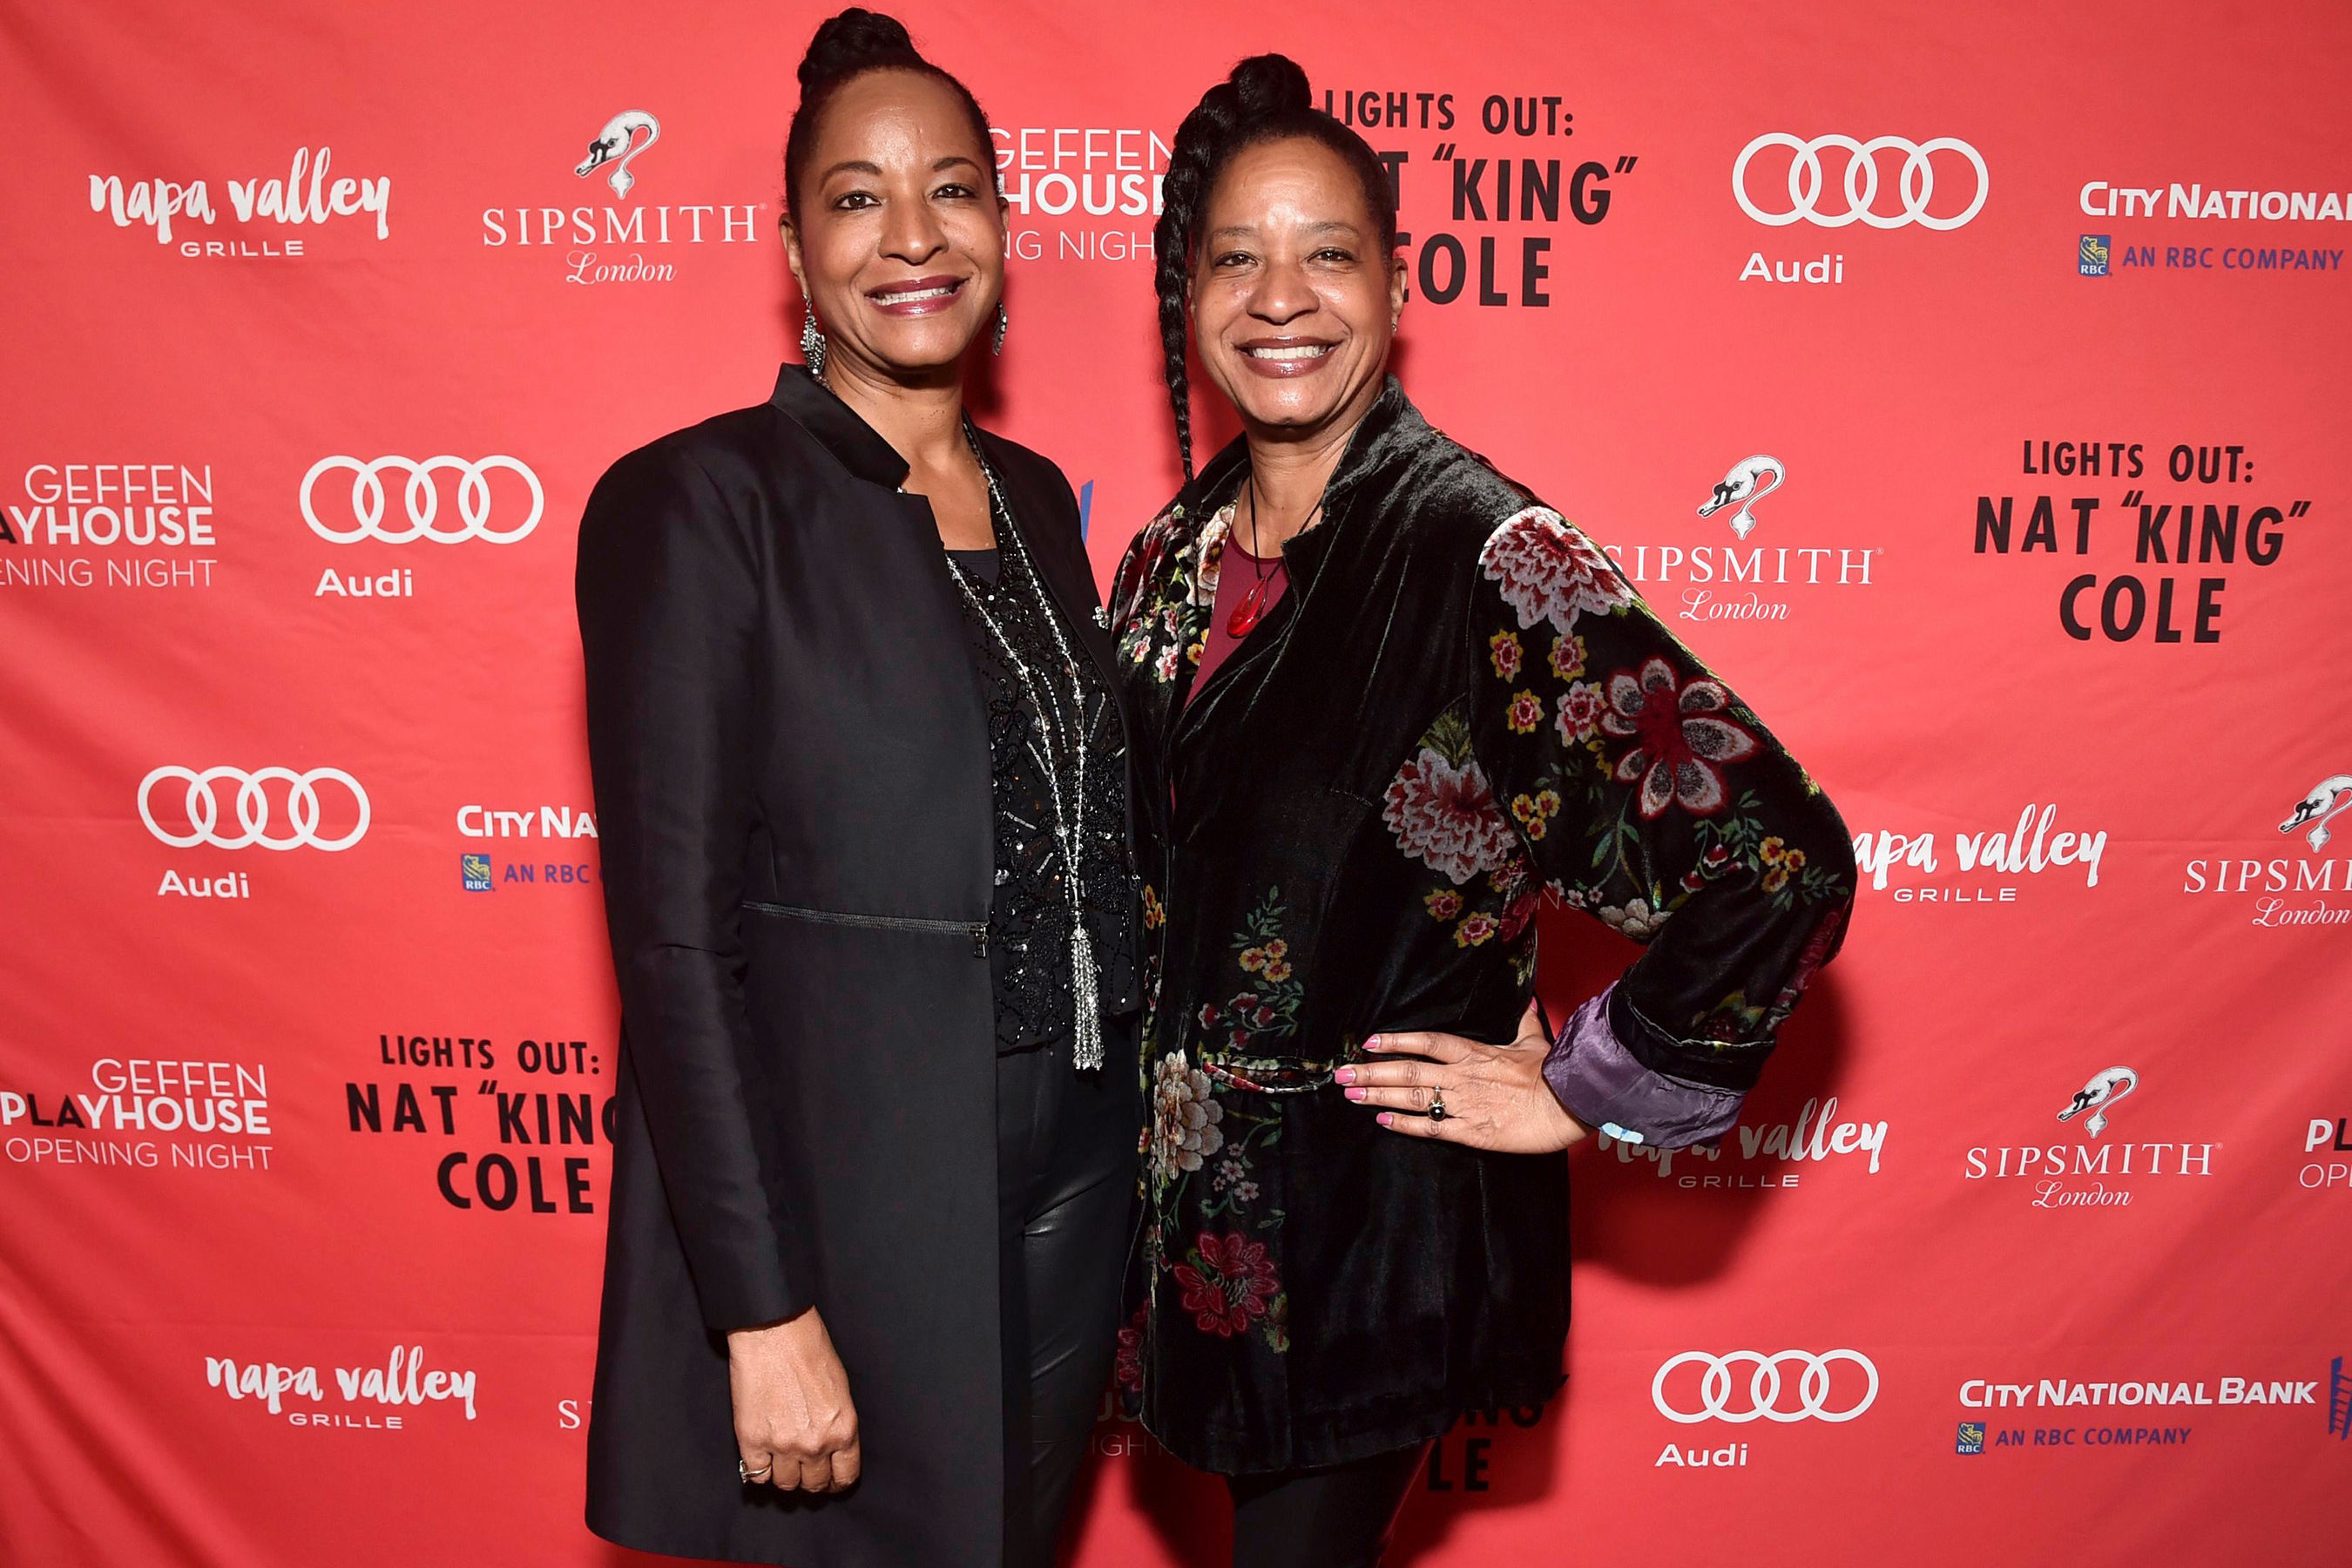 Nat King Cole's Daughters Celebrate the Music Legend's 100th Birthday: 'He Touched the Soul'